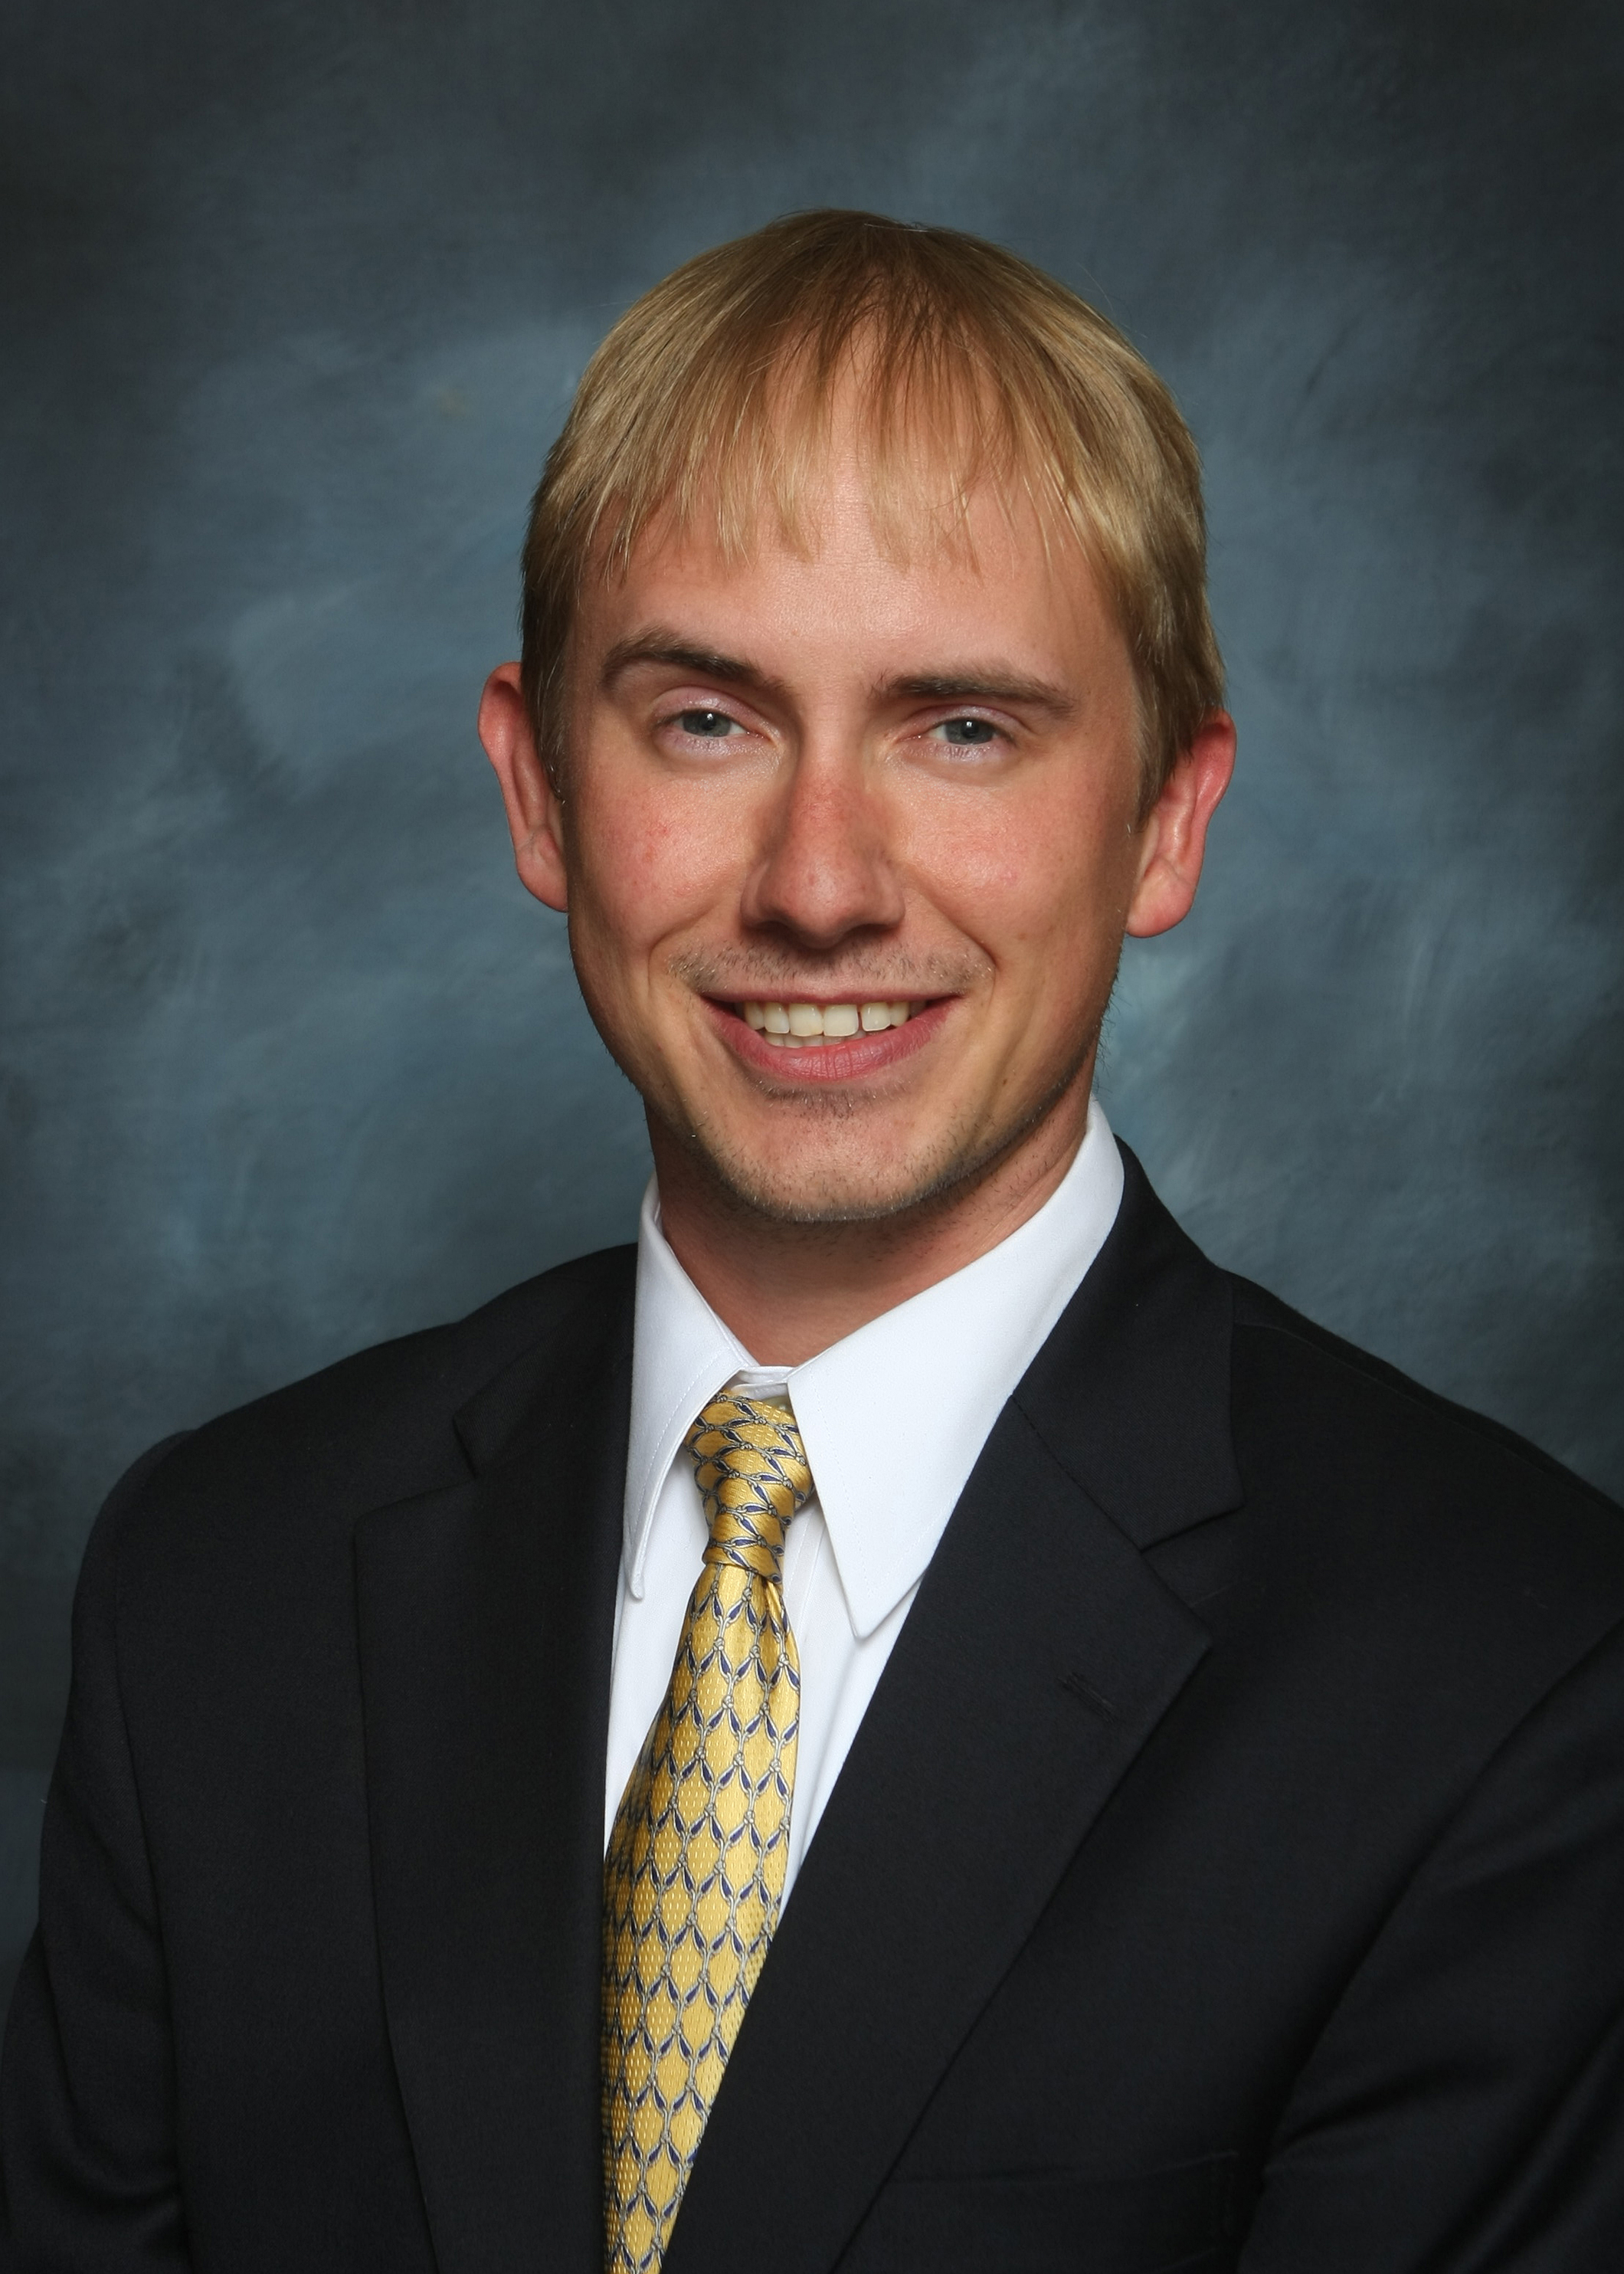 James Behne, financial advisor Lebanon IL